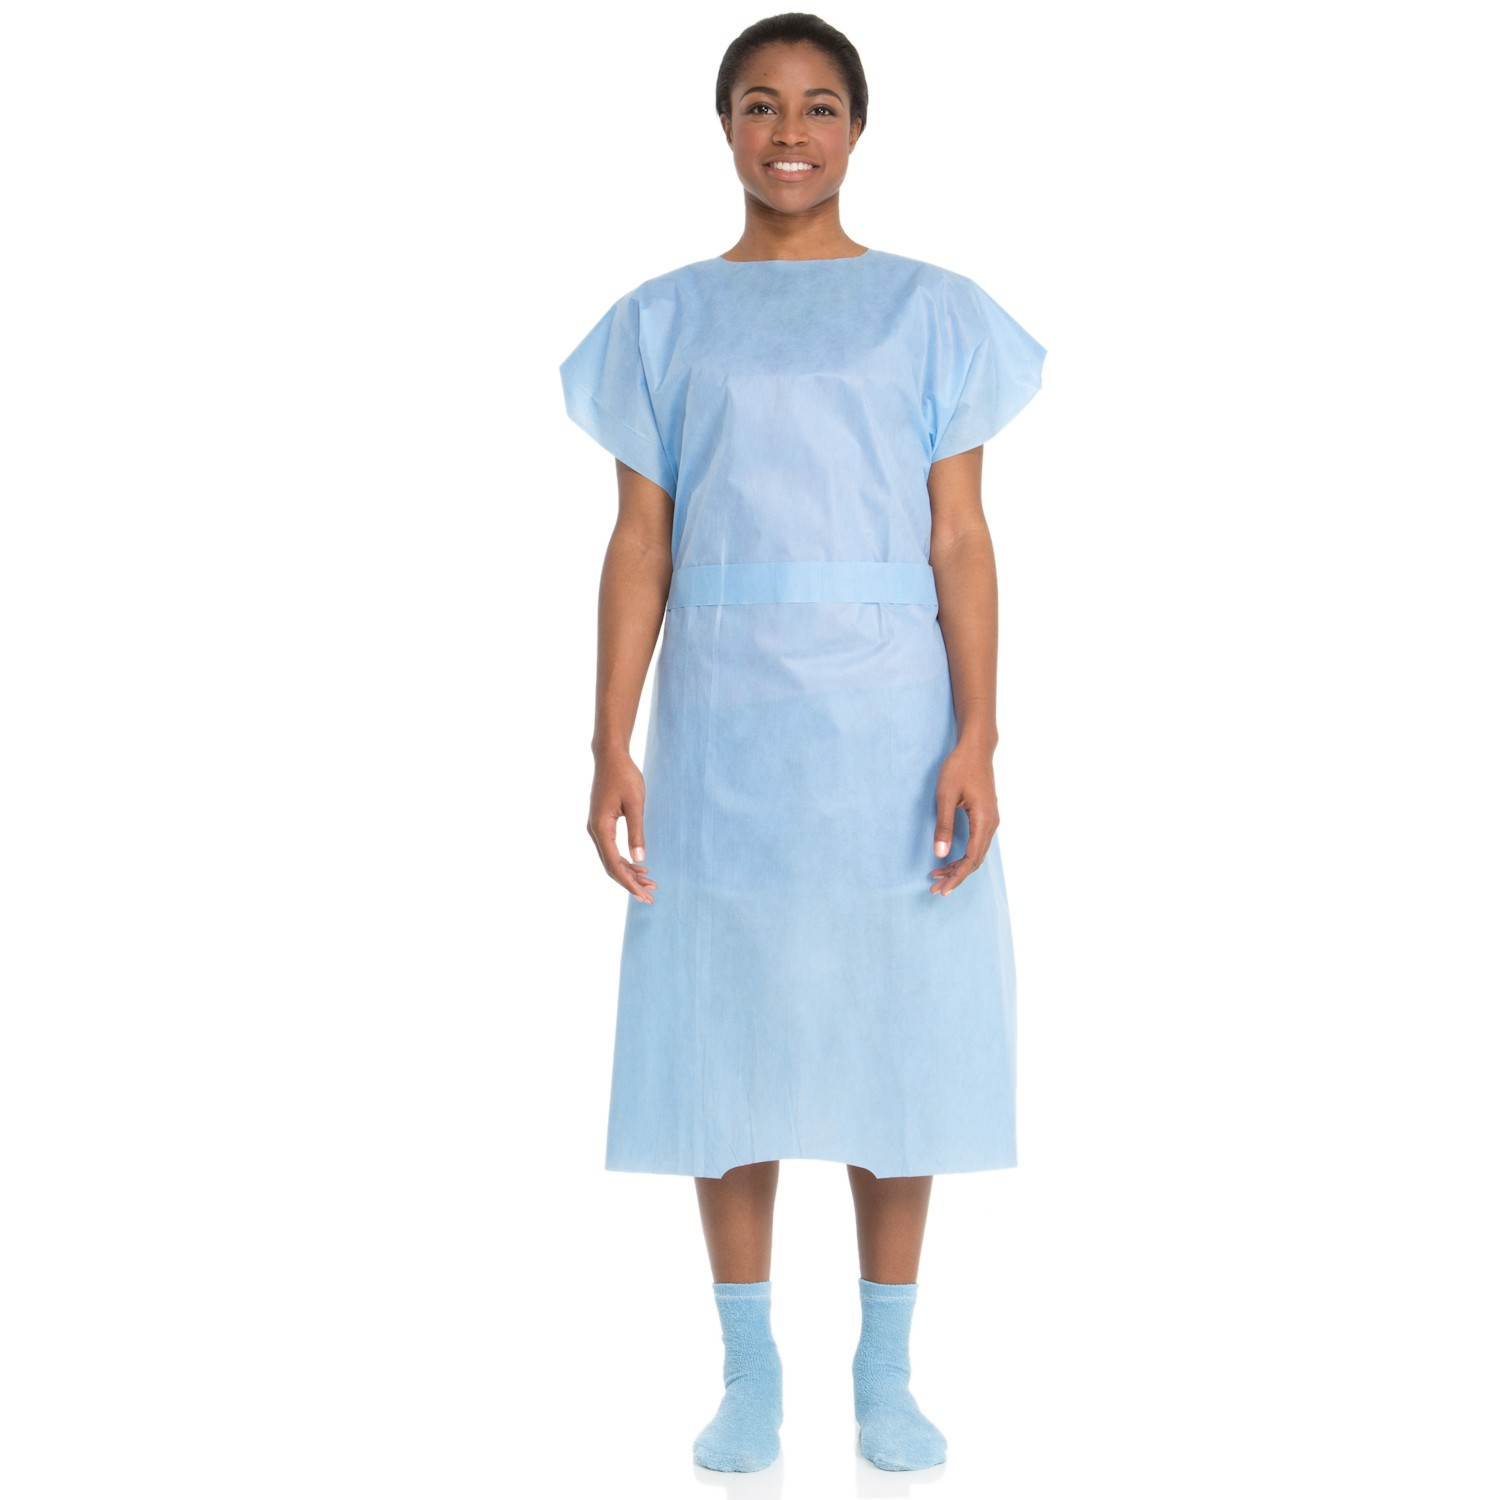 Patient Gown | Halyard Health